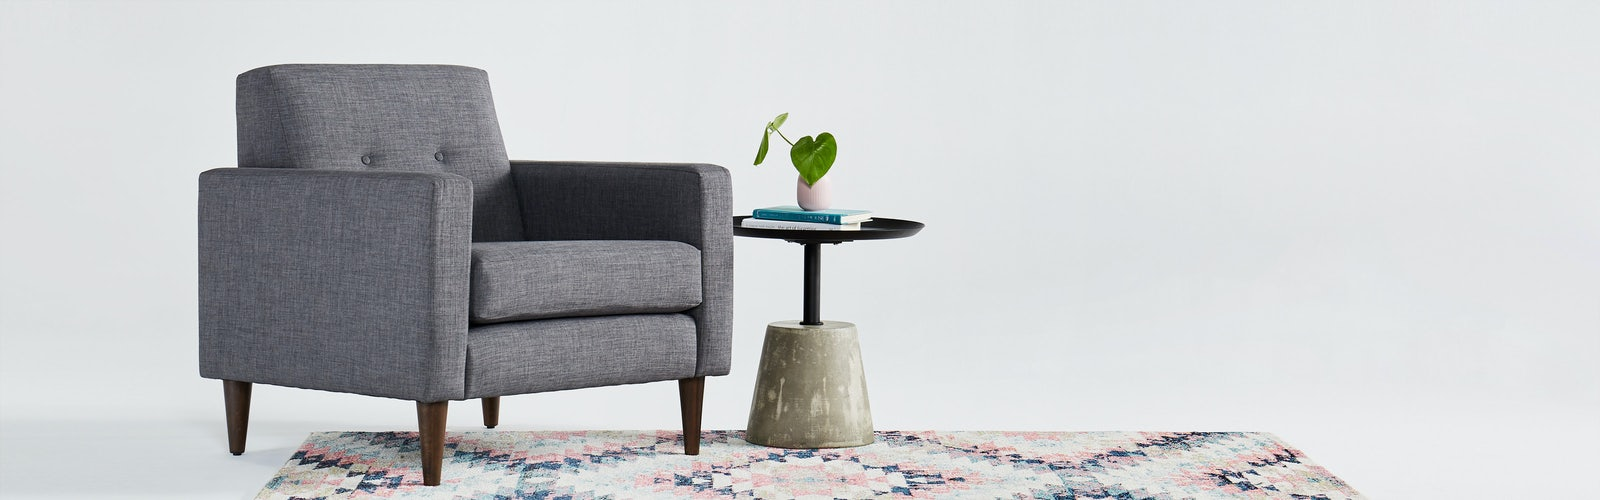 Apartment Chairs